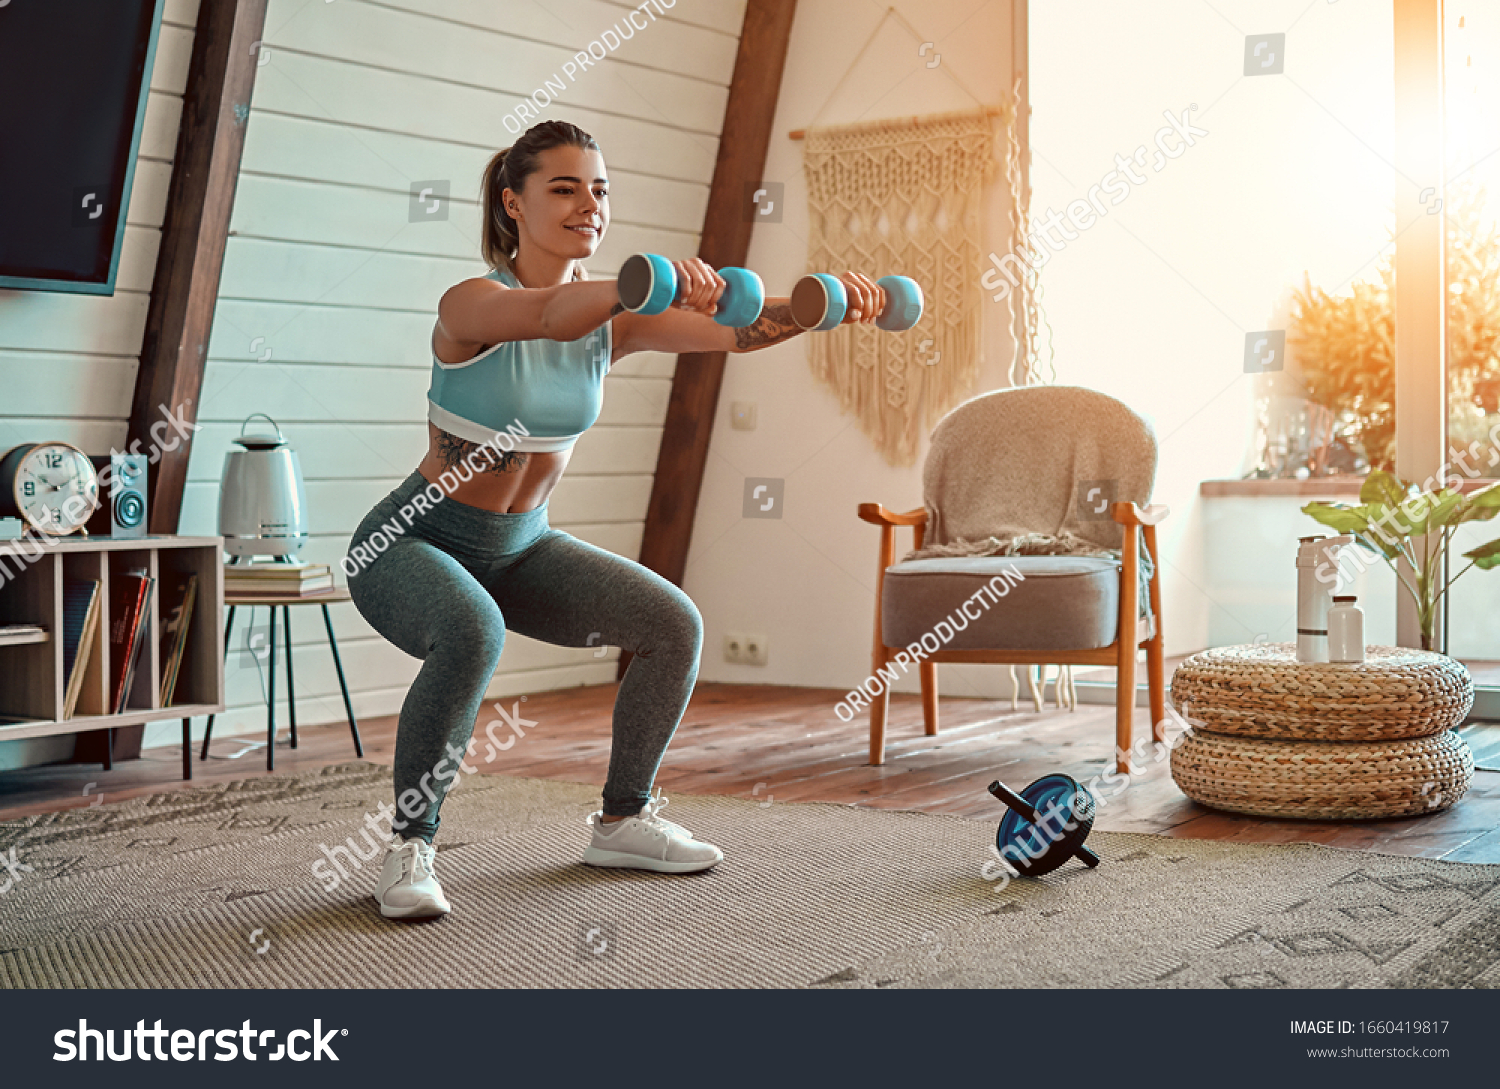 Beautiful young athletic girl in leggings and top crouches with dumbbells at home. Sport, healthy lifestyle. #1660419817